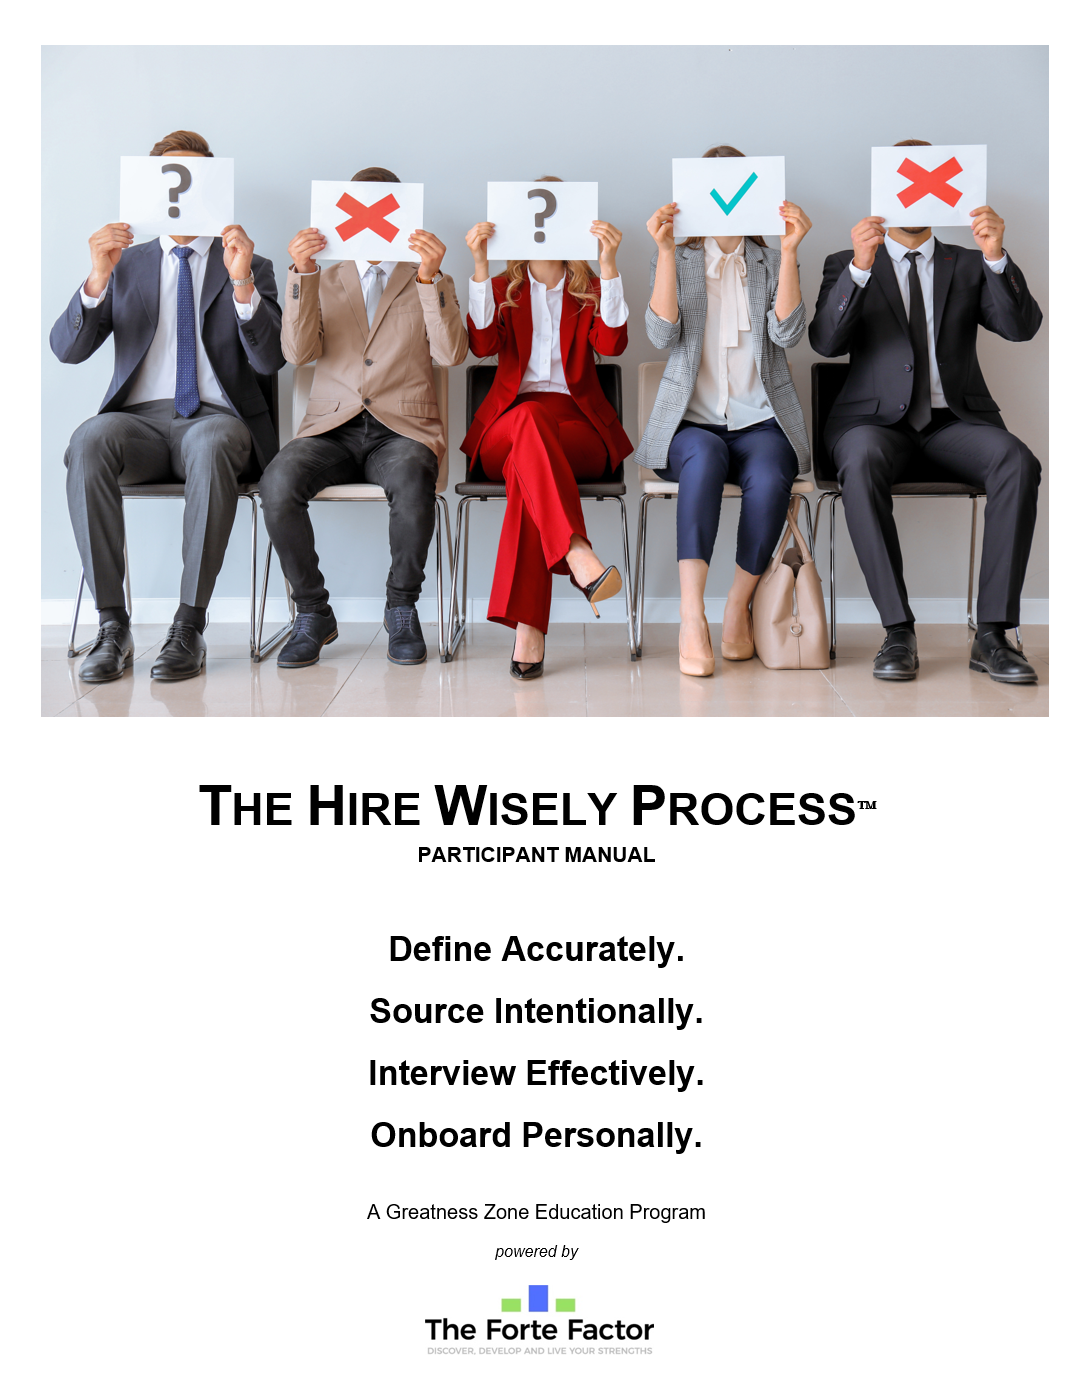 The Hire Wisely Process Program Manual